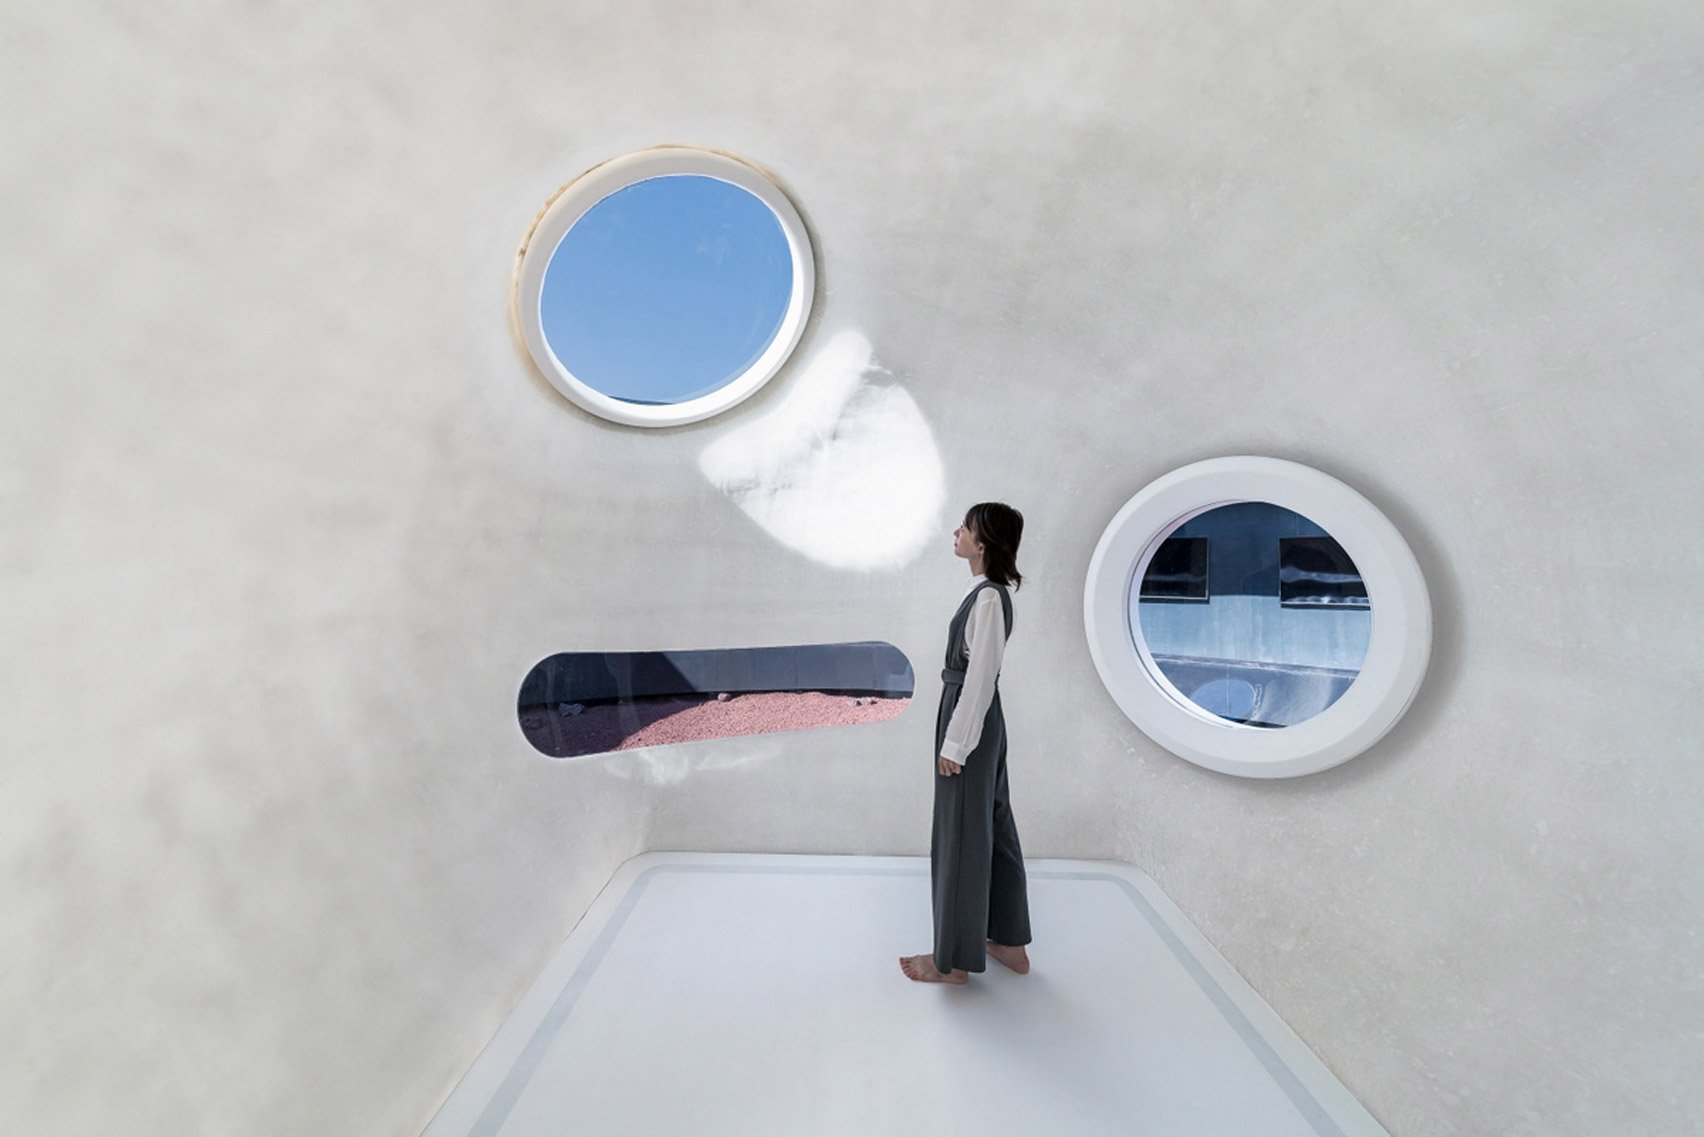 China House Vision Beijing future home architecture